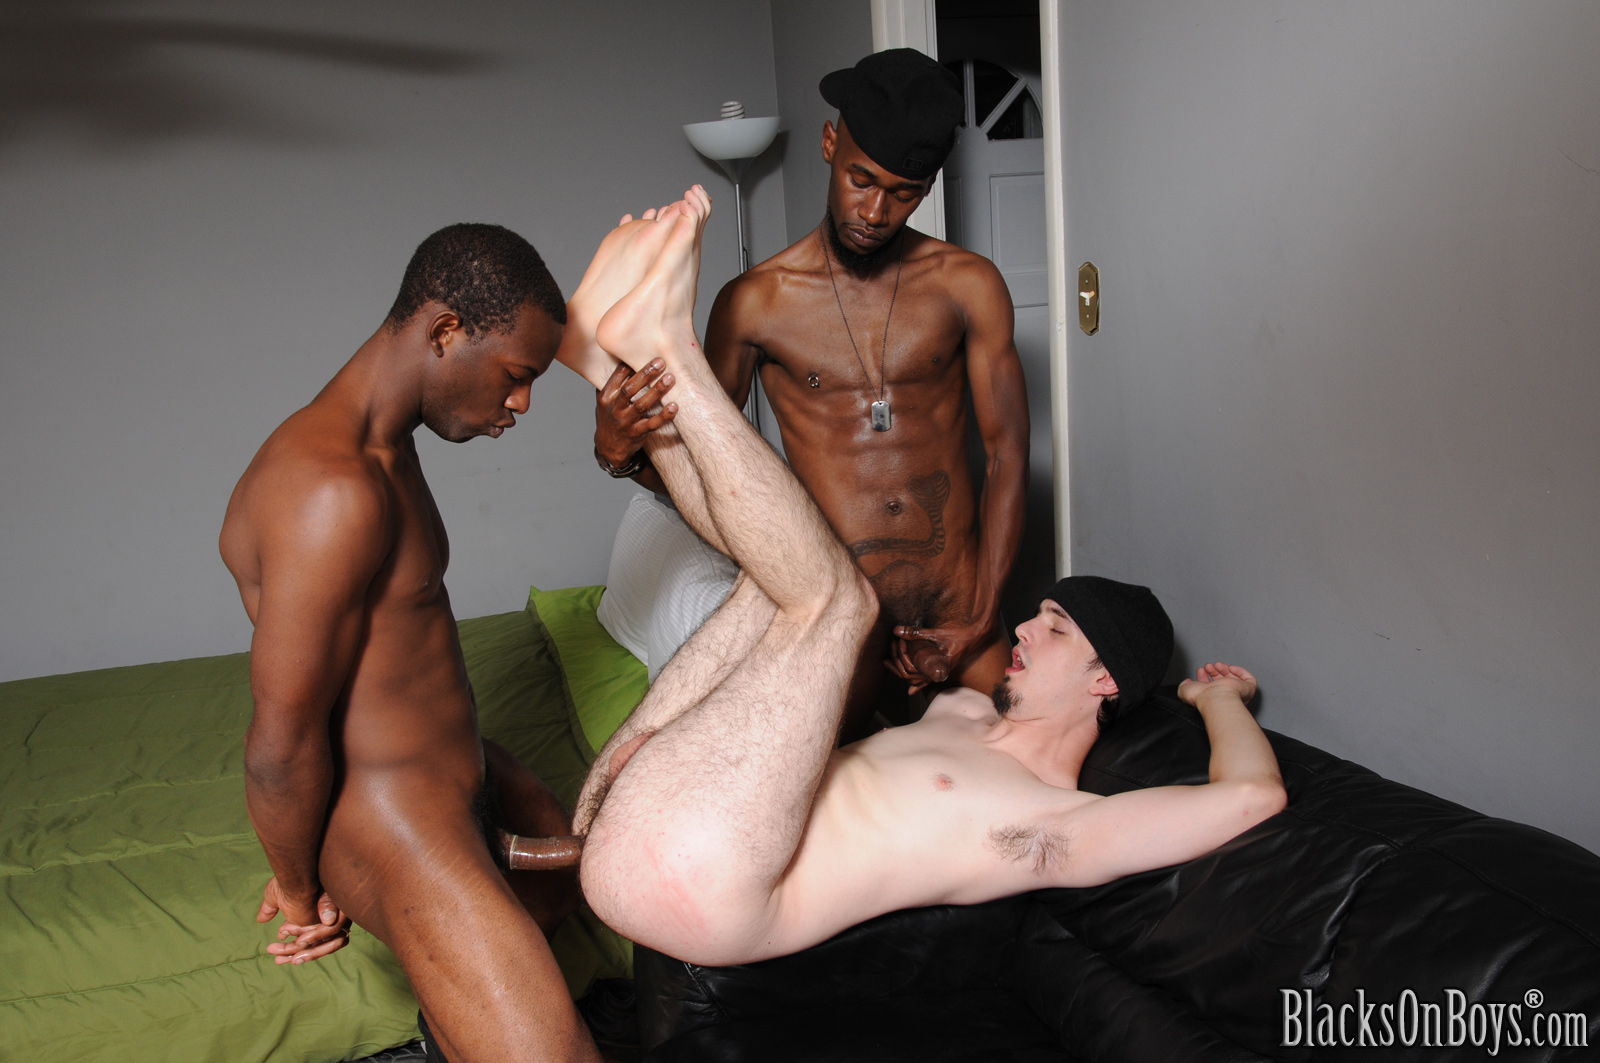 Interracial gay back sex